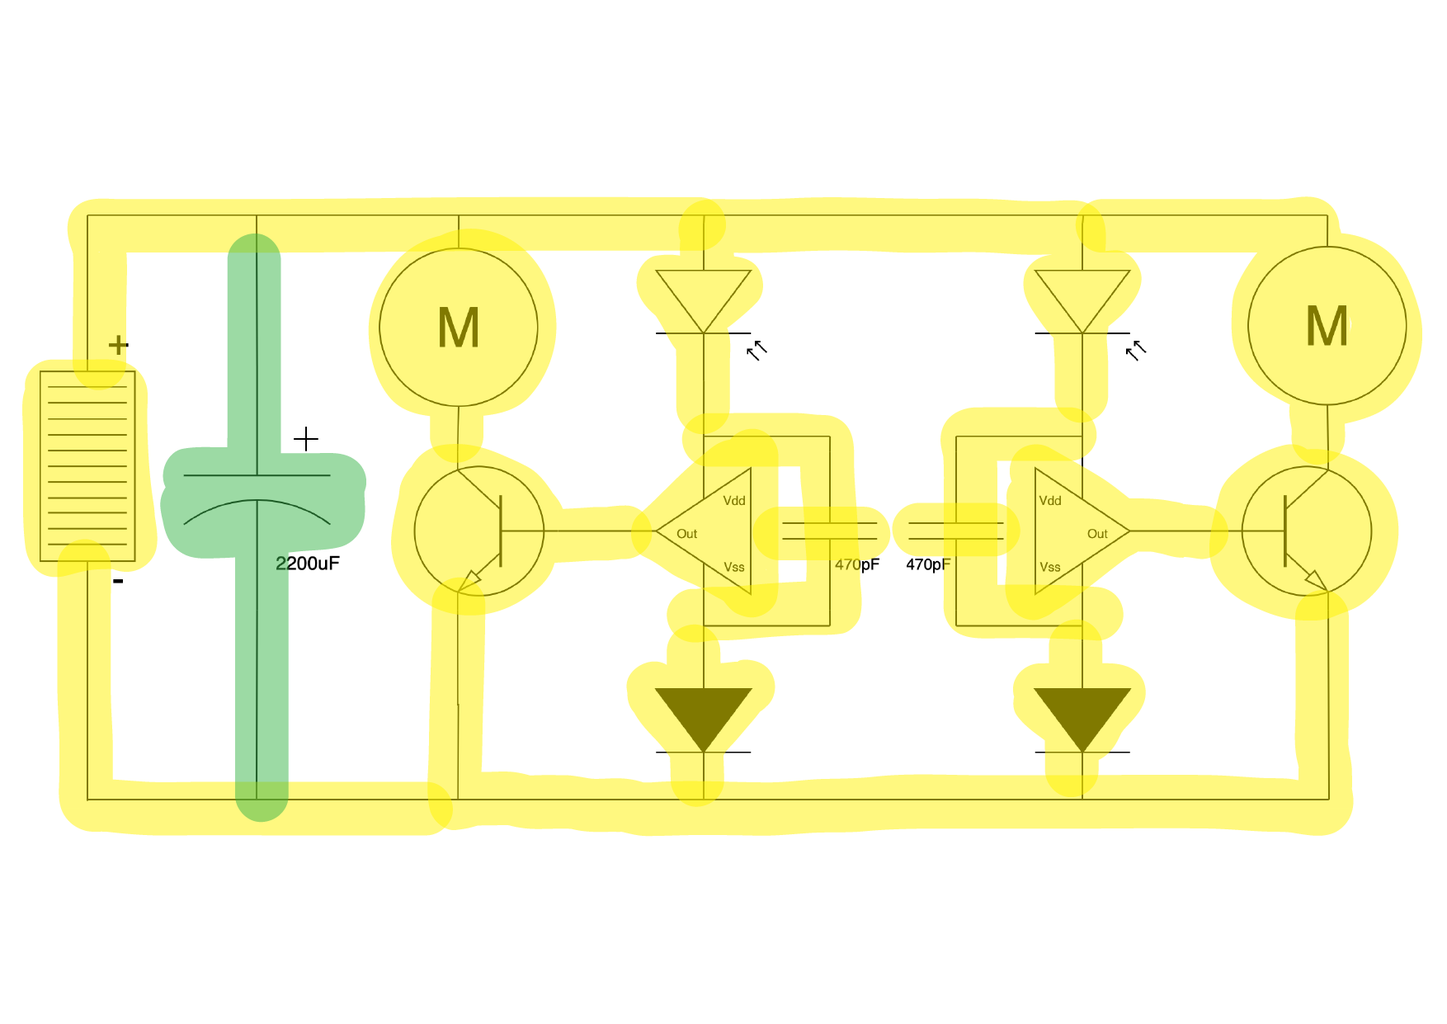 Freeforming the Circuit 13: Connecting the Storage Capacitor